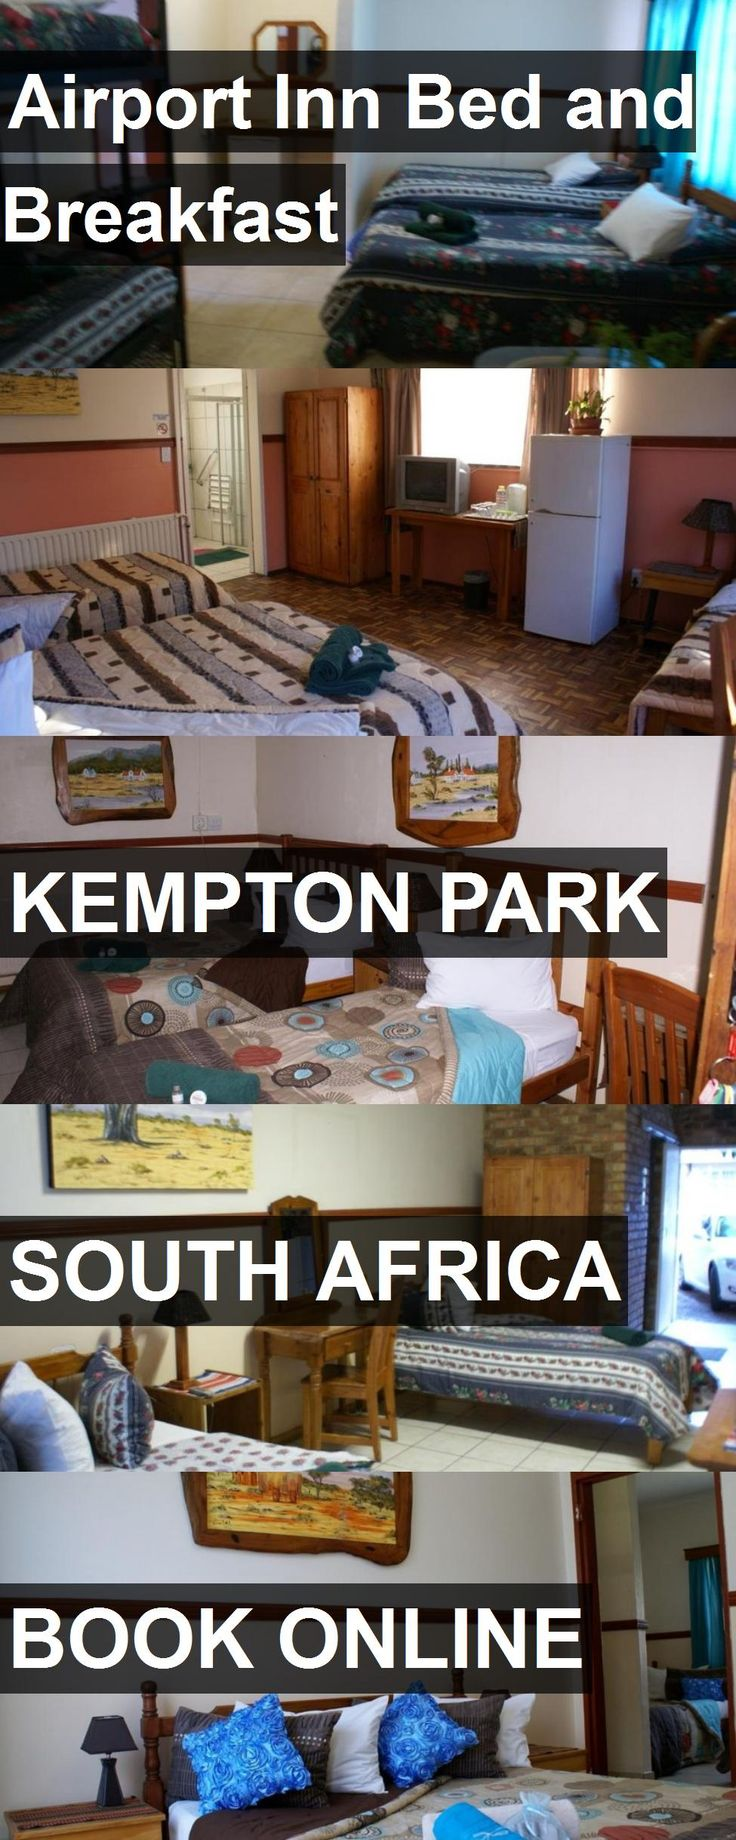 Hotel Airport Inn Bed and Breakfast in Kempton Park, South Africa. For more information, photos, reviews and best prices please follow the link. #SouthAfrica #KemptonPark #AirportInnBedandBreakfast #hotel #travel #vacation